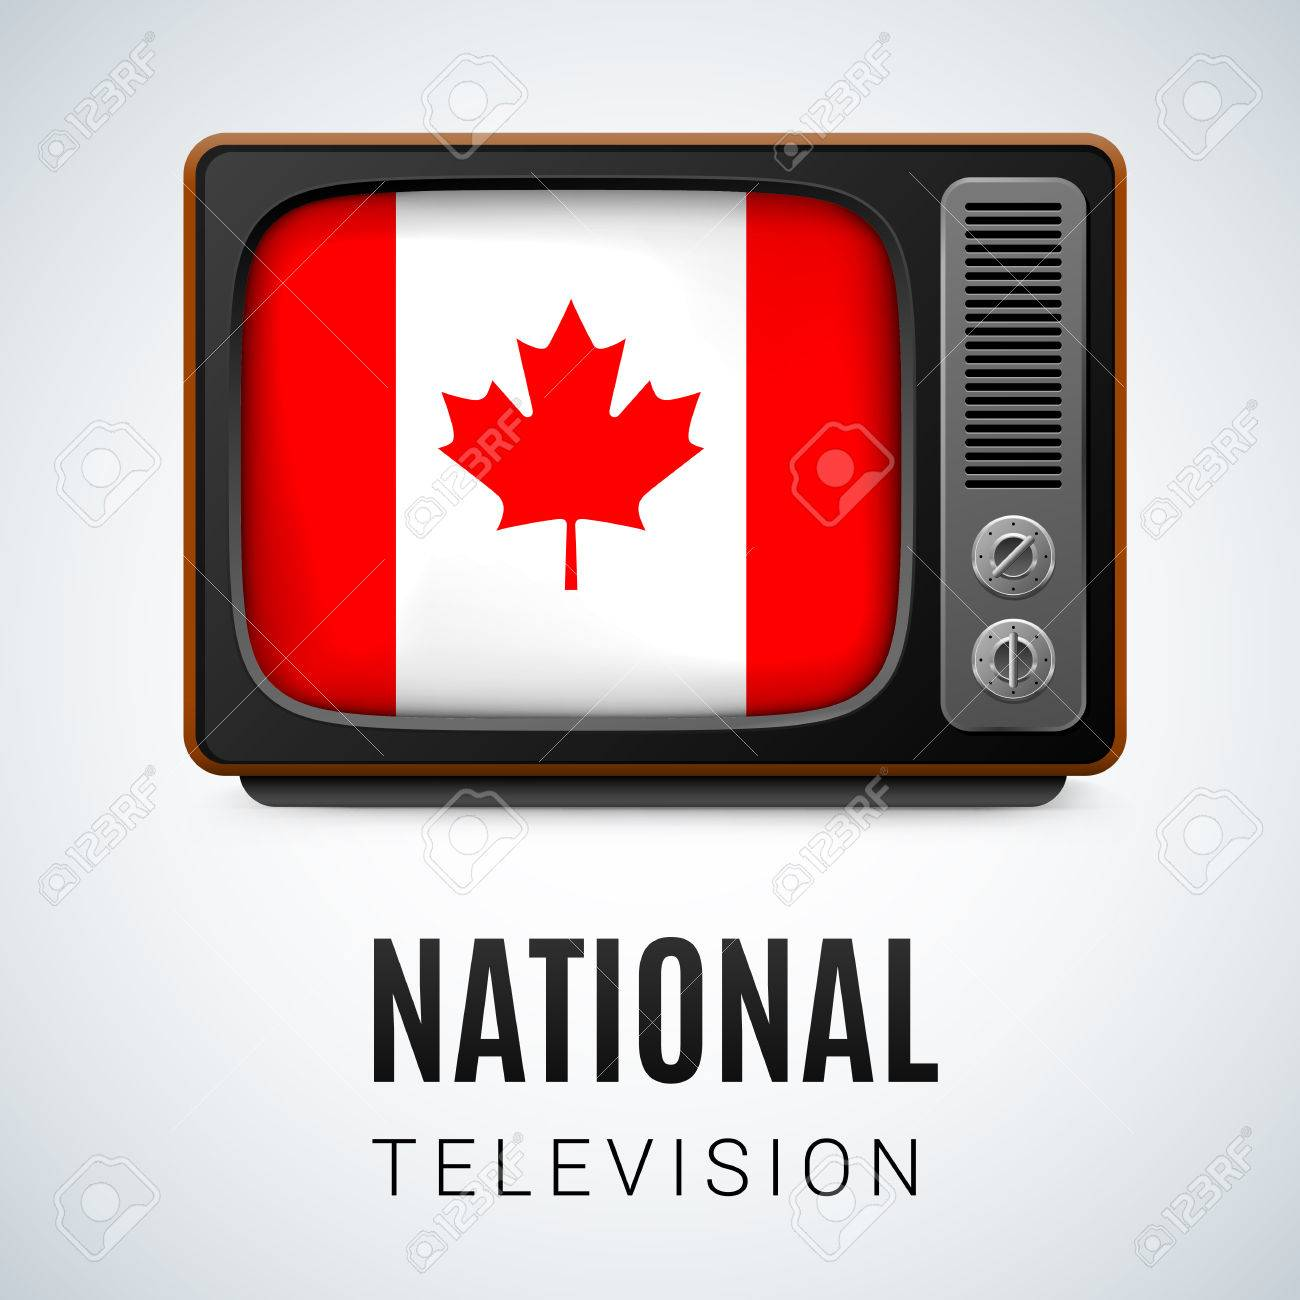 Vintage Tv And Flag Of Canada As Symbol National Television